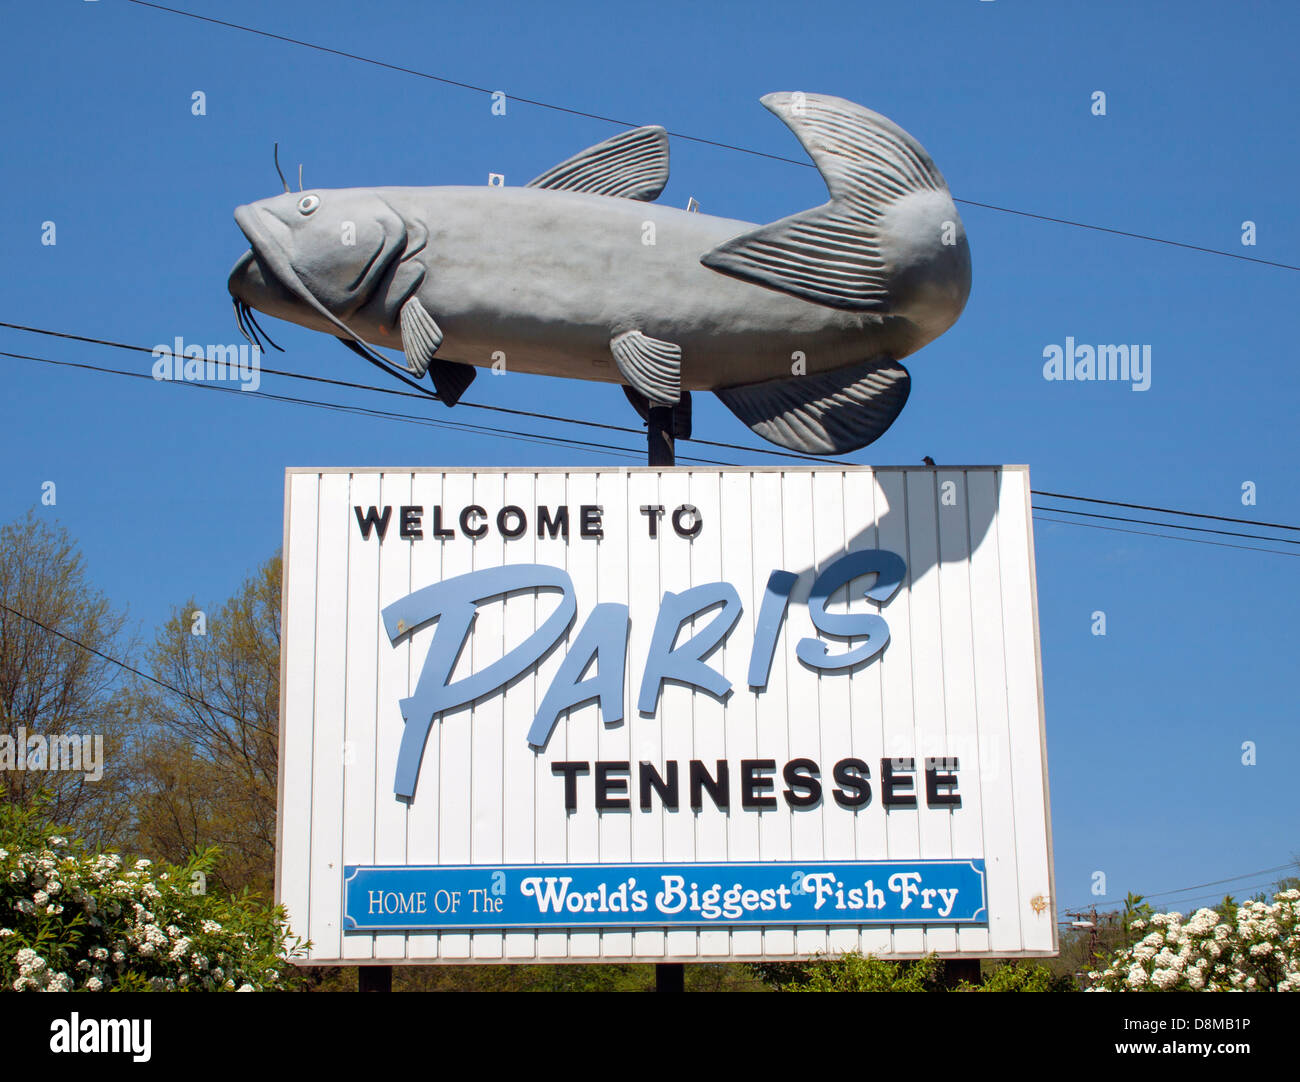 Tennessee welcome sign stock photos tennessee welcome sign stock welcome to paris tennessee sign home of the worlds biggest fish fry stock image publicscrutiny Images